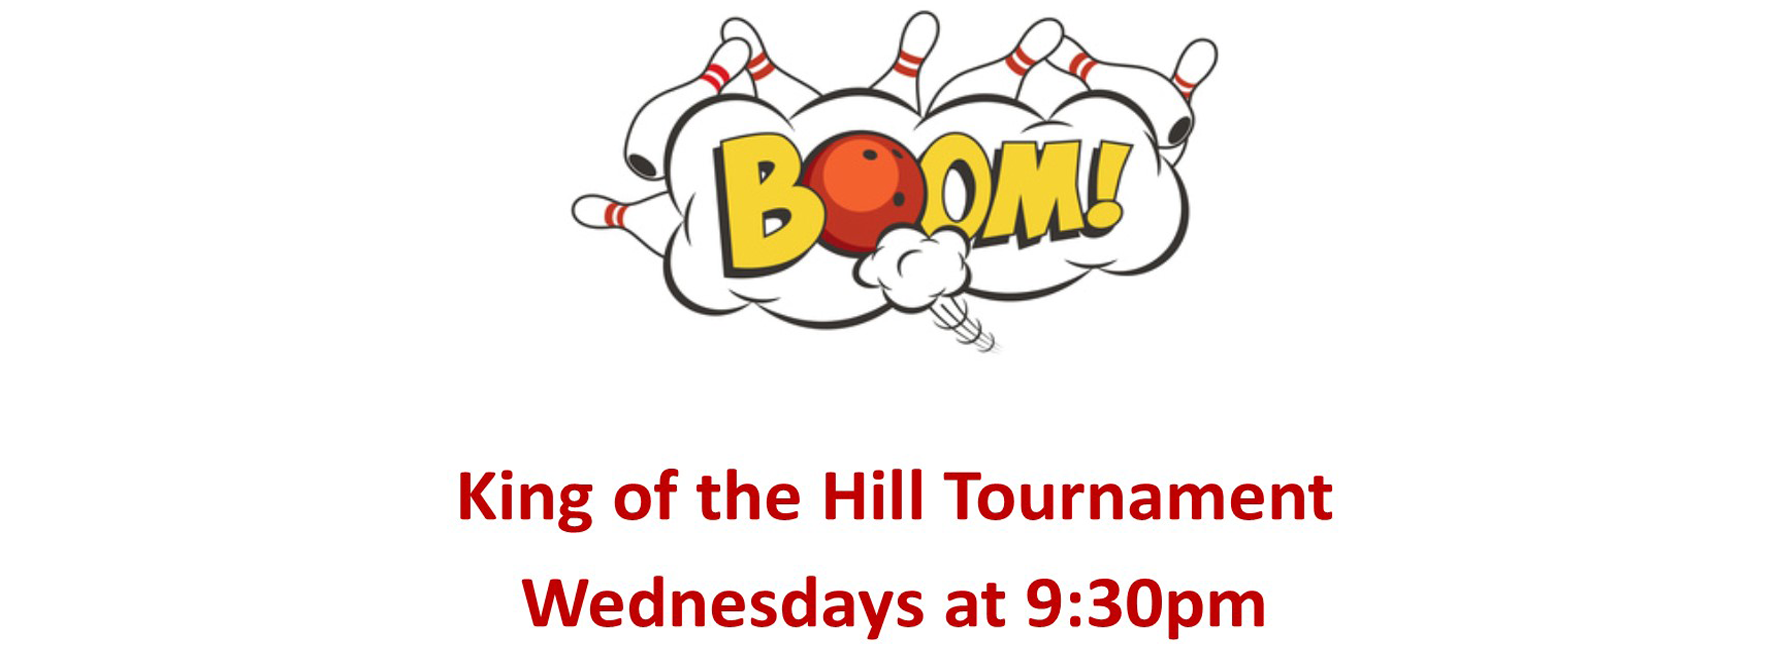 King of the Hill Tournament 2017